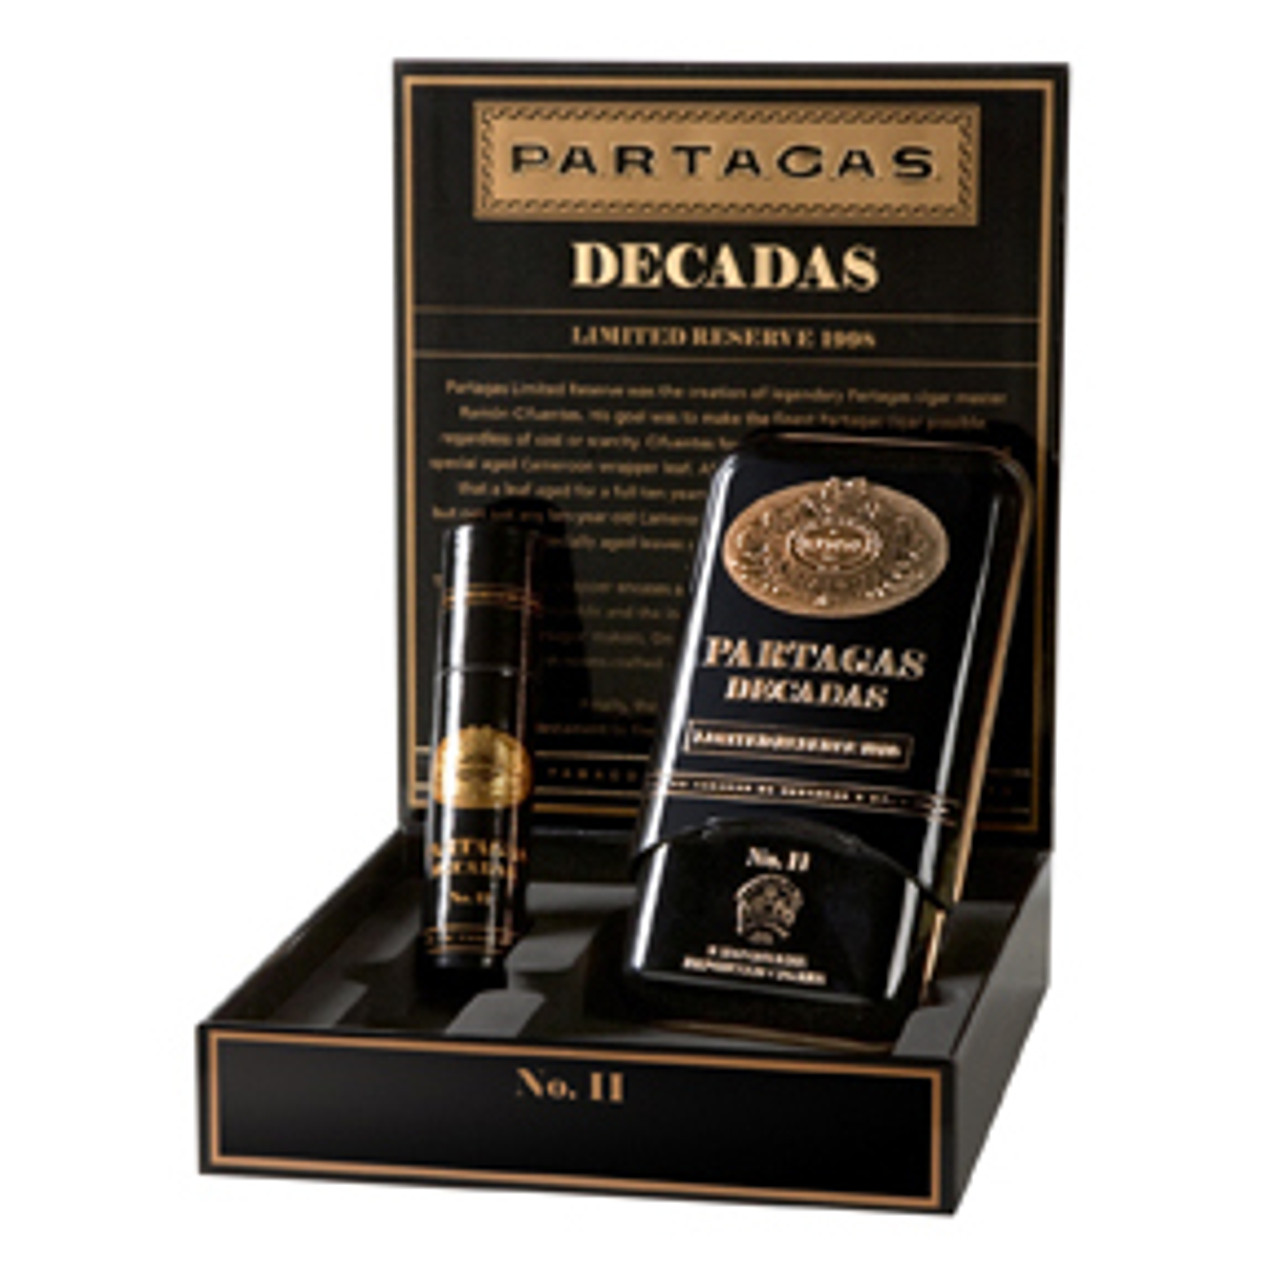 Cigar Samplers Partagas Decadas Limited Reserve 1998 Gift Set Cigars - 5.5 x 50 (Box of 3)